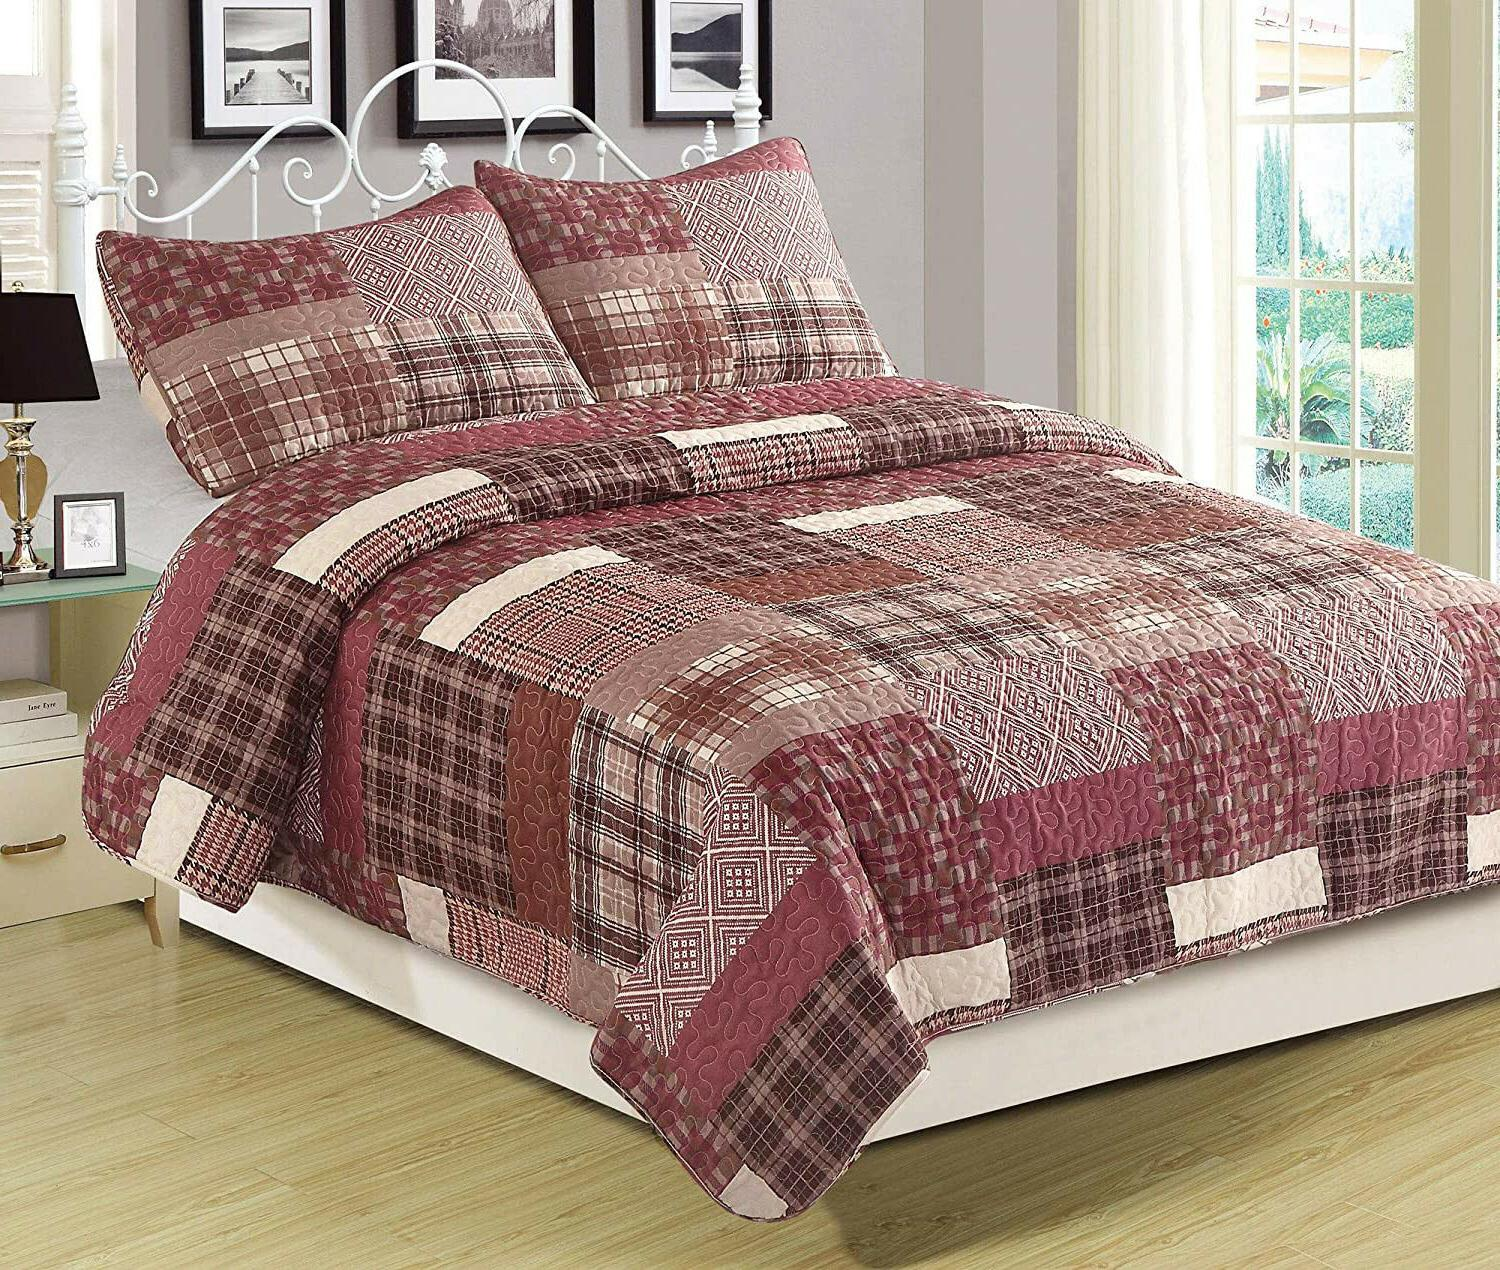 full queen or king quilt red plaid